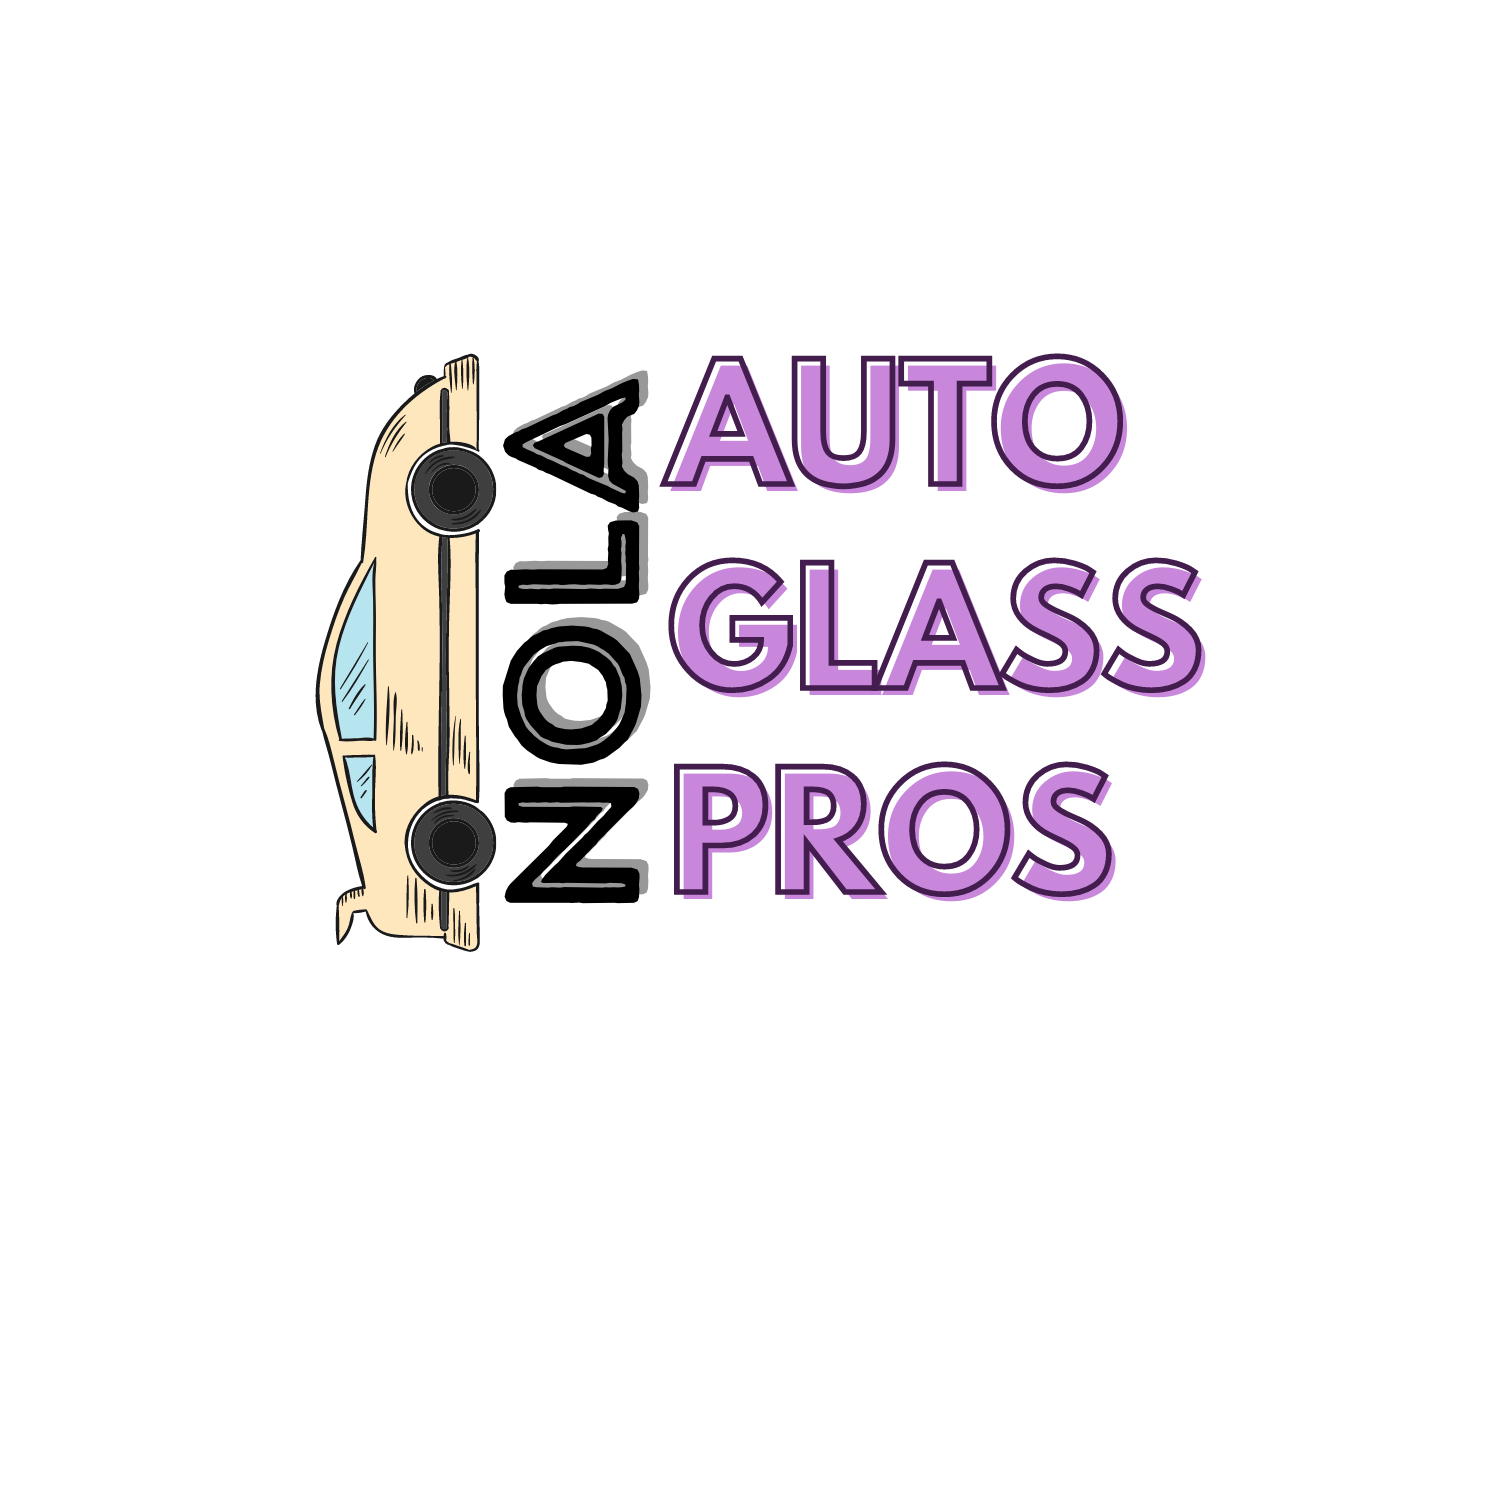 NOLA Auto Glass Pros - Repair & Replace Is A Trusted New Orleans Auto Glass Repair & Replace Center